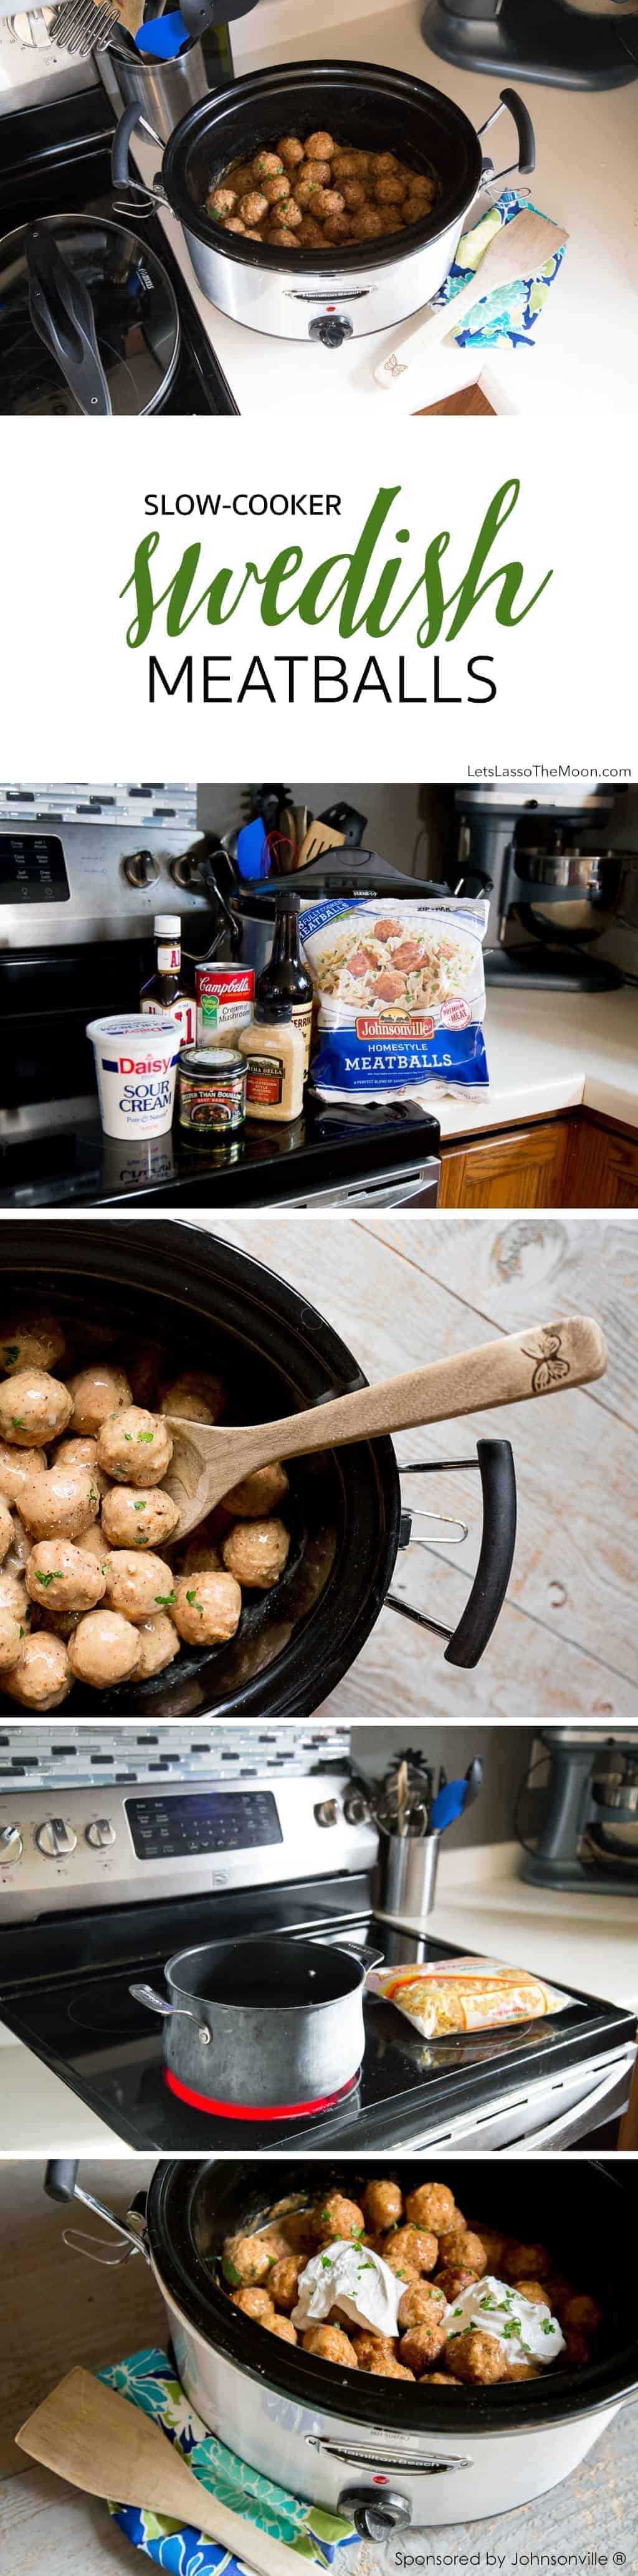 Slow-Cooker Swedish Meatballs Recipe: Nothing beats the smell of meatballs in the crock pot smothered in a homemade, creamy gravy sauce. These taste much better than the one's they serve at IKEA. *This recipe is so simple and perfect solution when having a large group of guests over for a party!